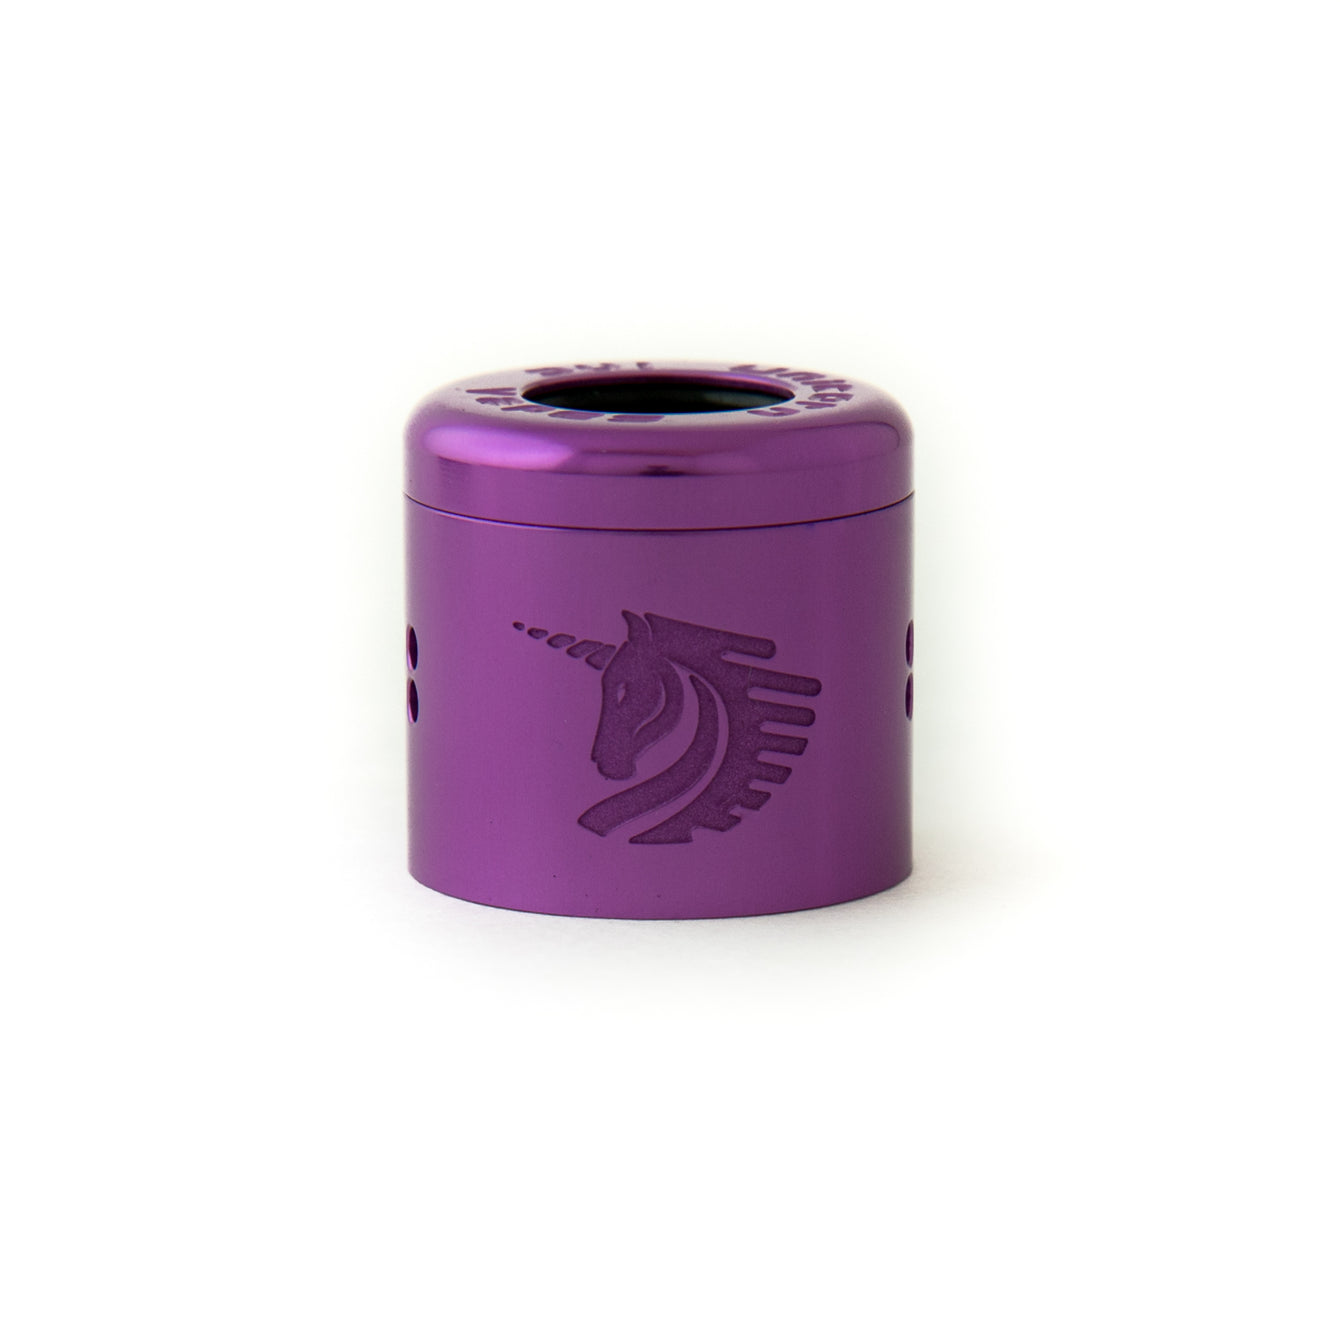 Purple top cap unicorn rda